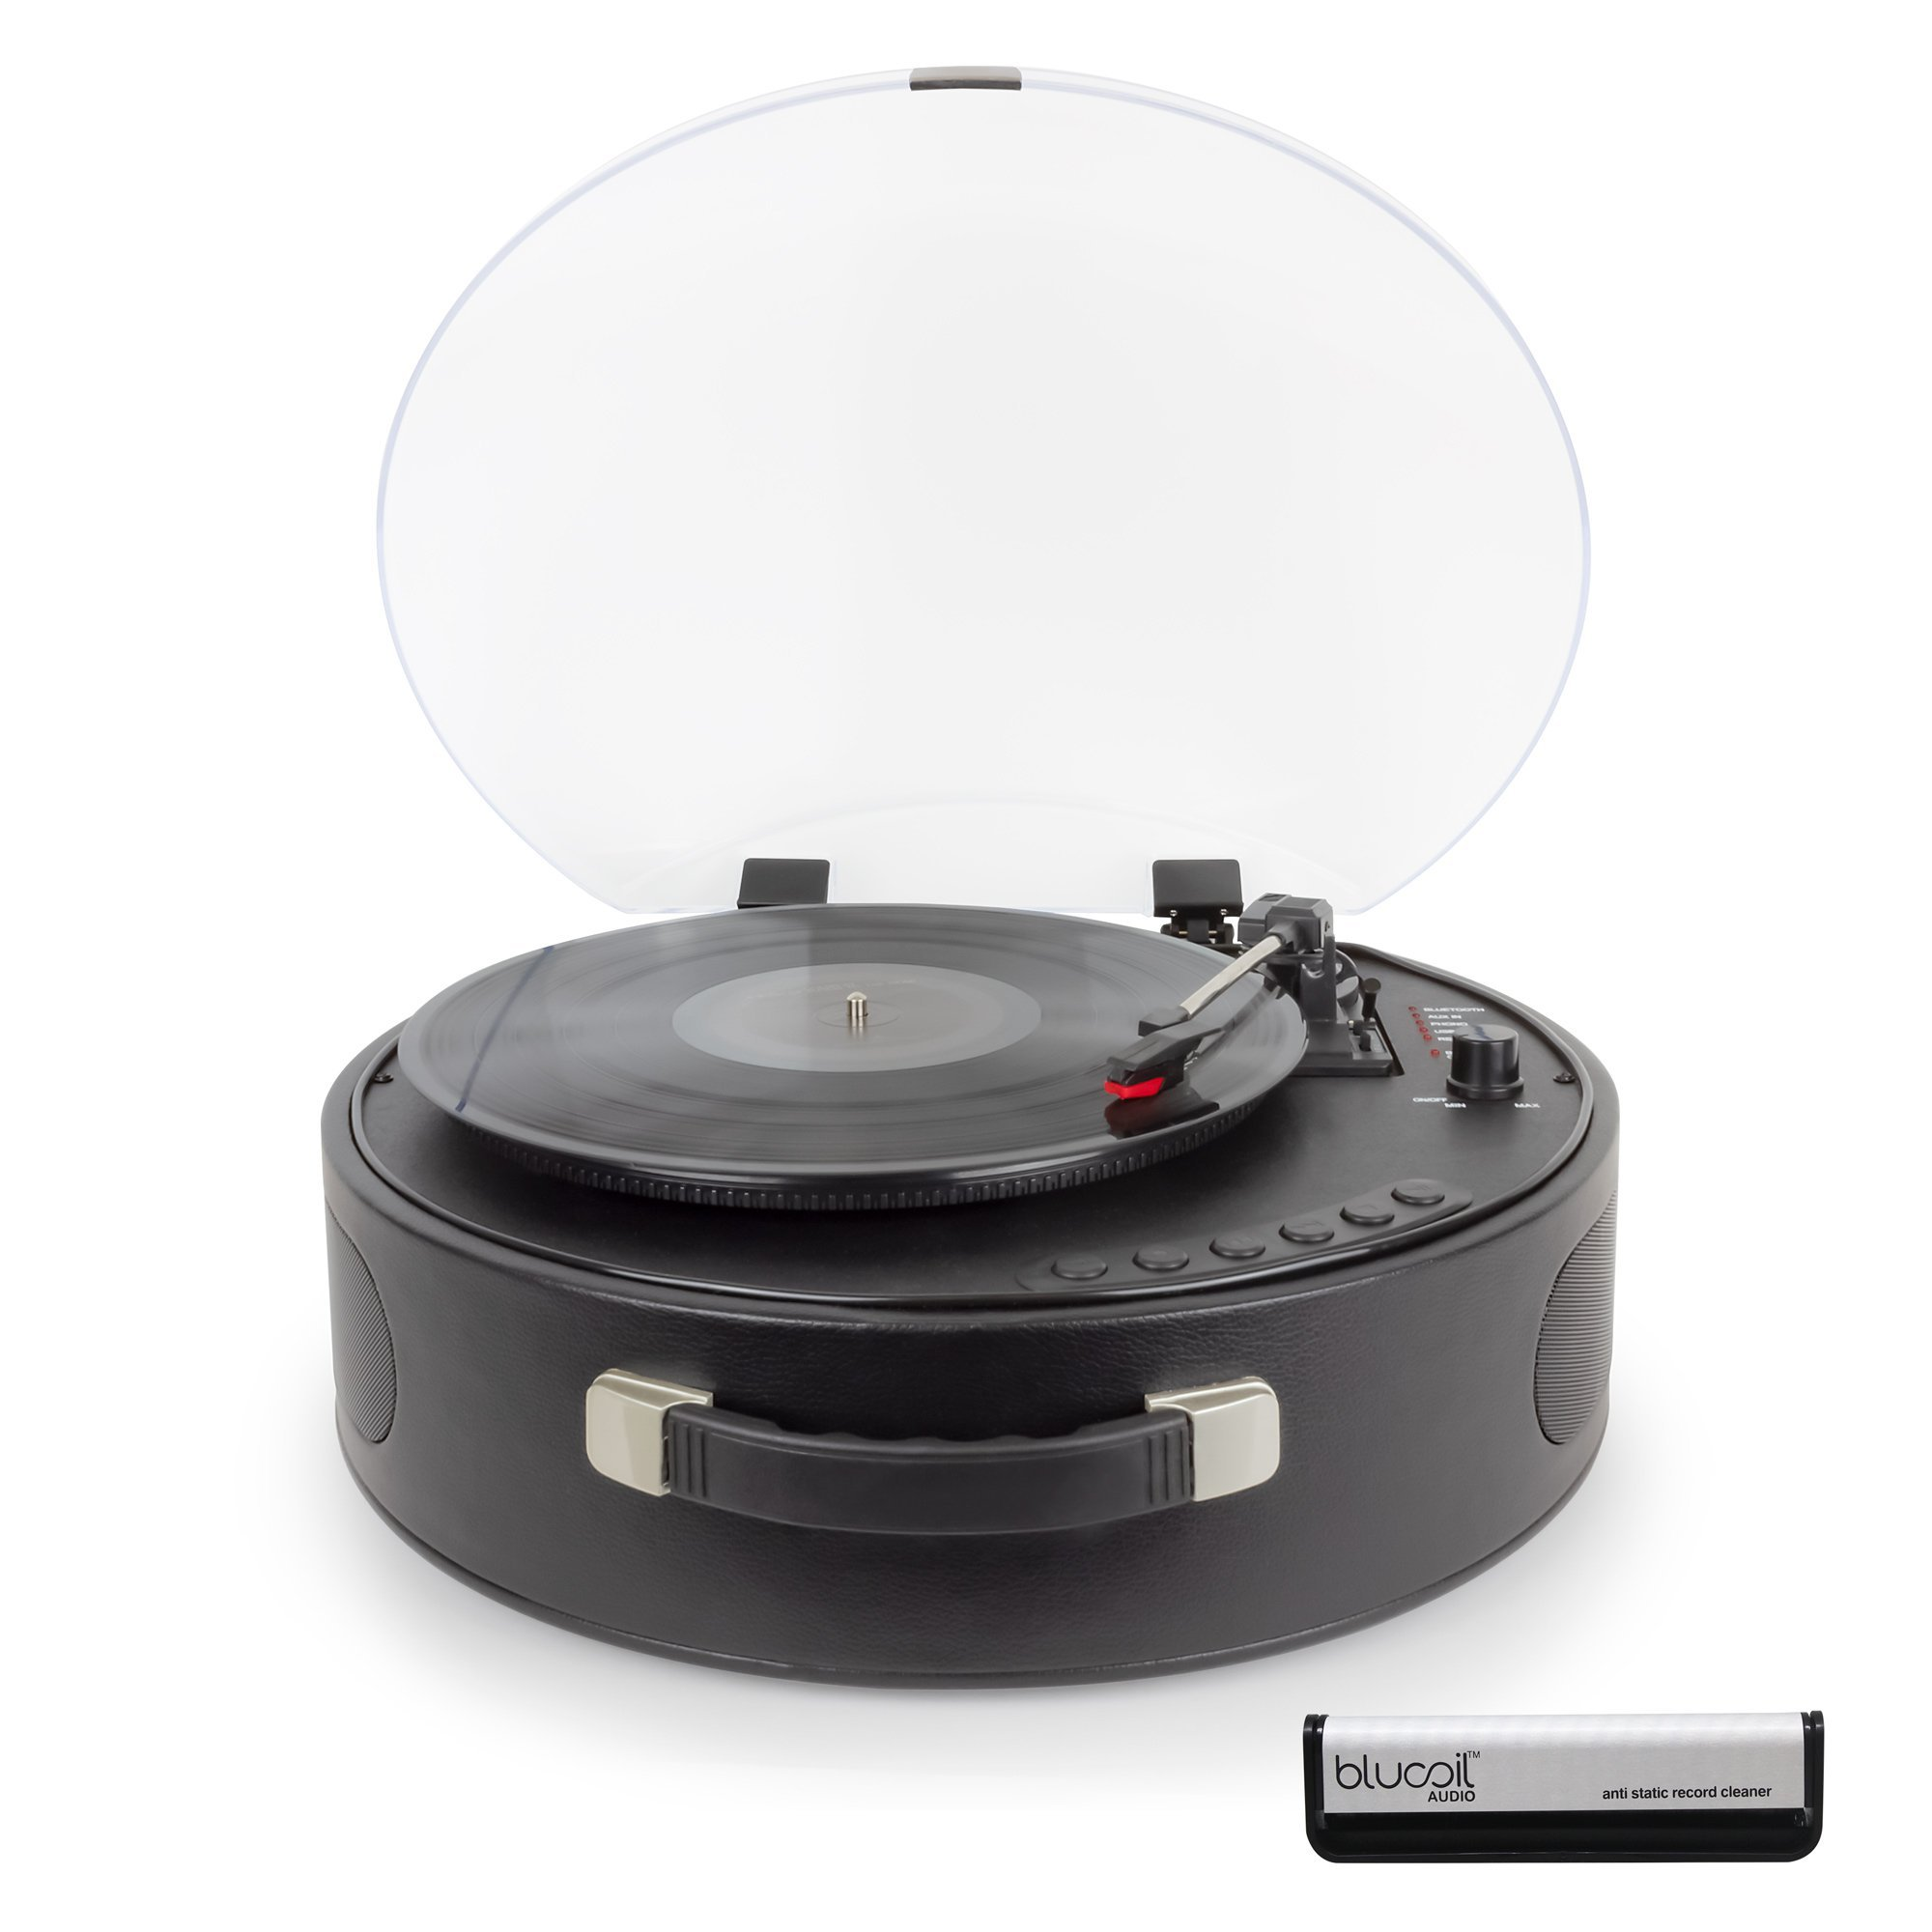 Rock N Rolla UFO Portable Turntable with Rechargeable Battery and Bluetooth for Vinyl Records with Built-in Speakers (Black) - INCLUDES - Blucoil Vinyl Brush